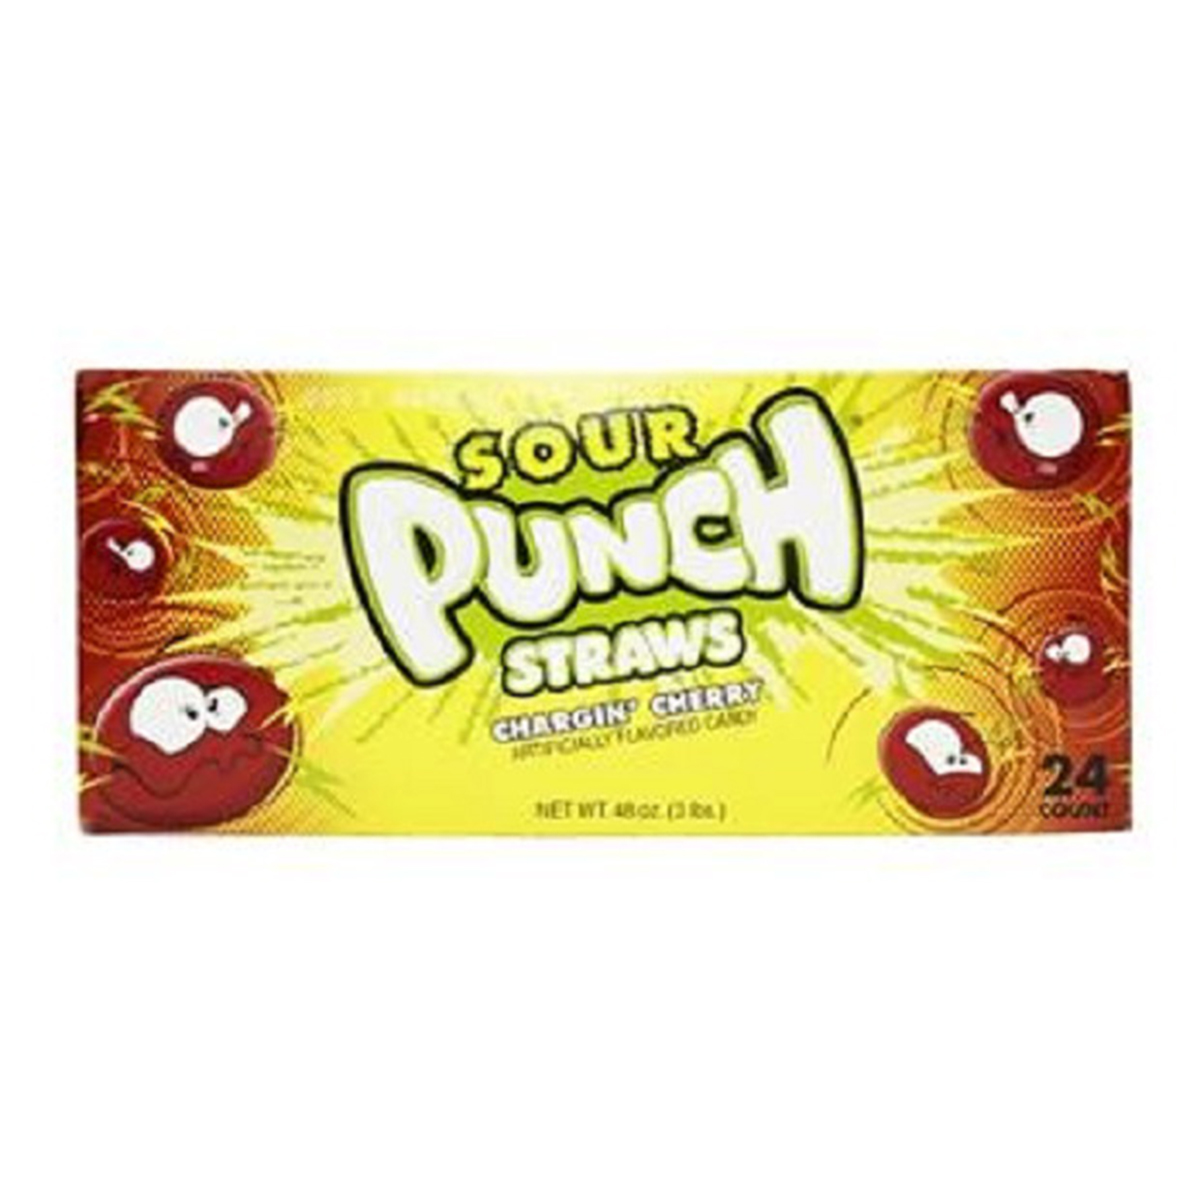 Product Of Sour Punch, Straws, Chargin Cherry, Ct 24 (2 Oz) - Sugar Candy / Grab Varieties & Flavors